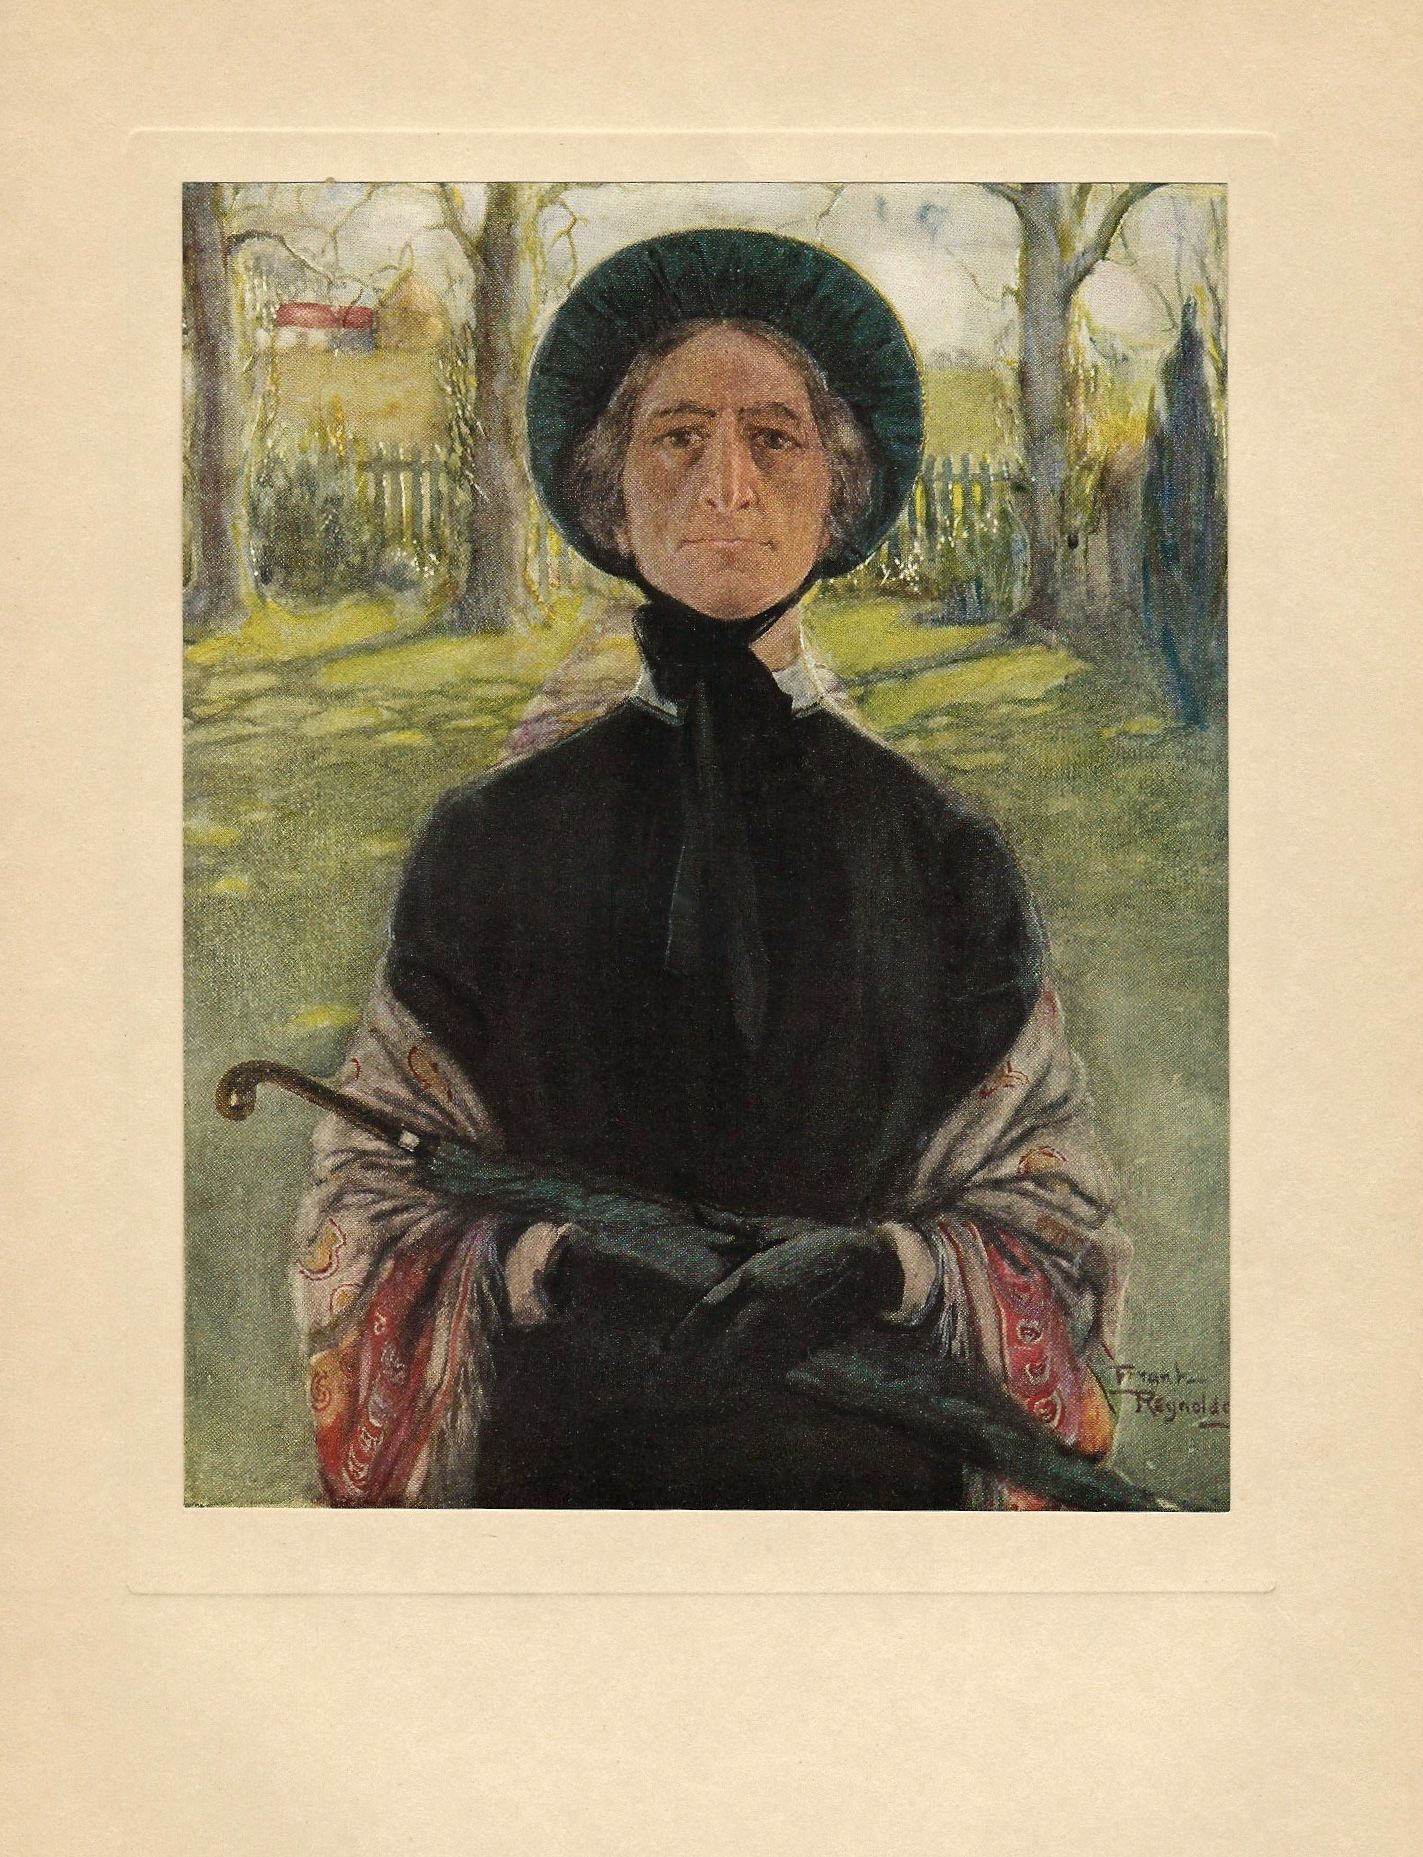 miss betsey trotwood a illustration by frank reynolds for   miss betsey trotwood a 1923 illustration by frank reynolds for charles dickens